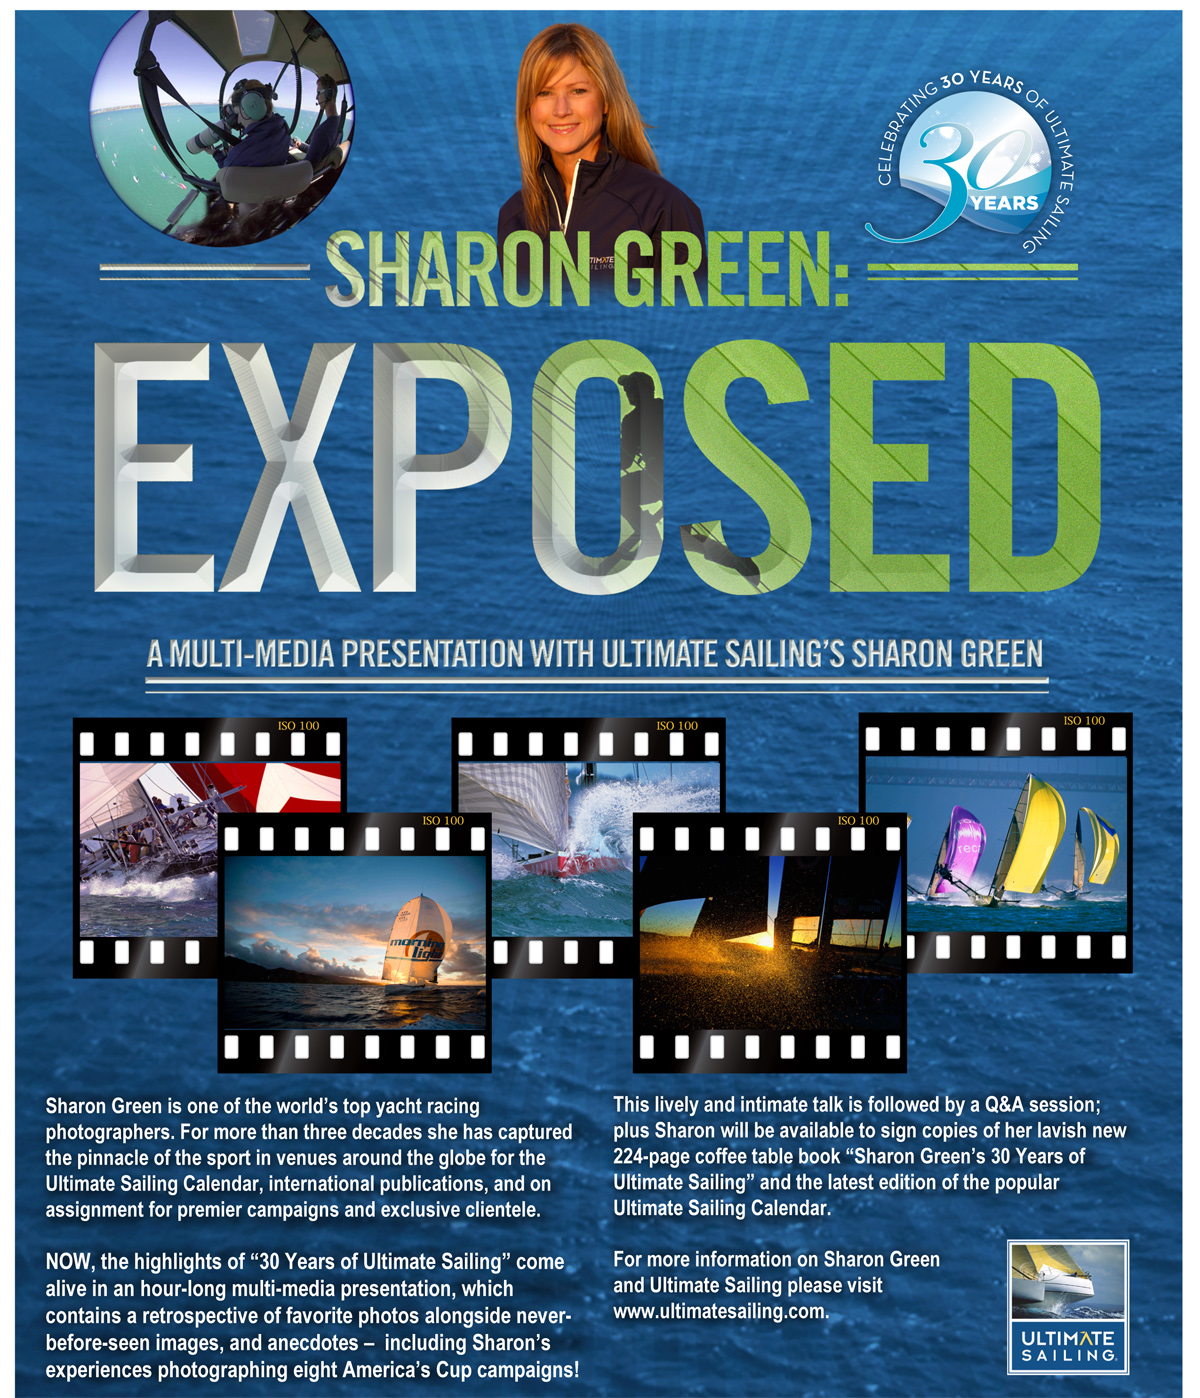 SGREEN EXPOSED flyer 879x1024 Top Yachting Photographer to Speak at the Houston Yacht Club